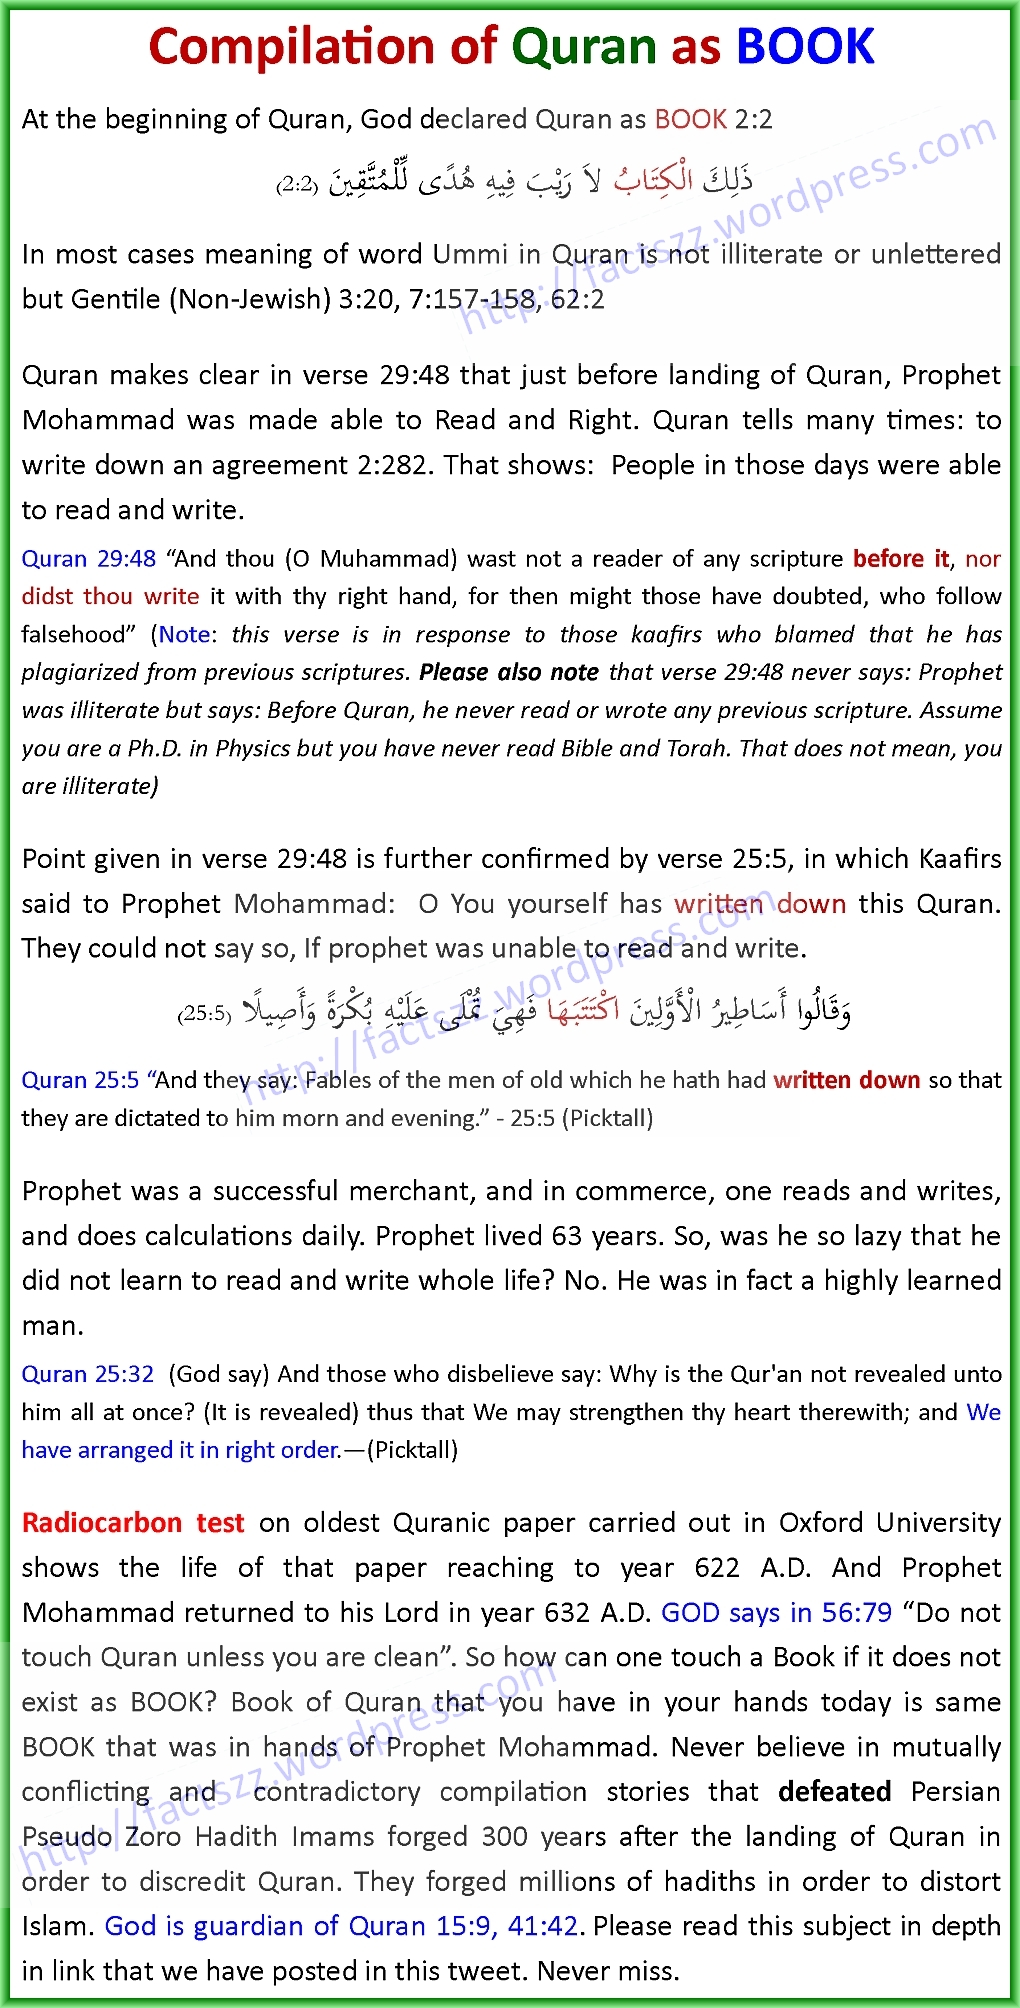 quran_compilation_note2